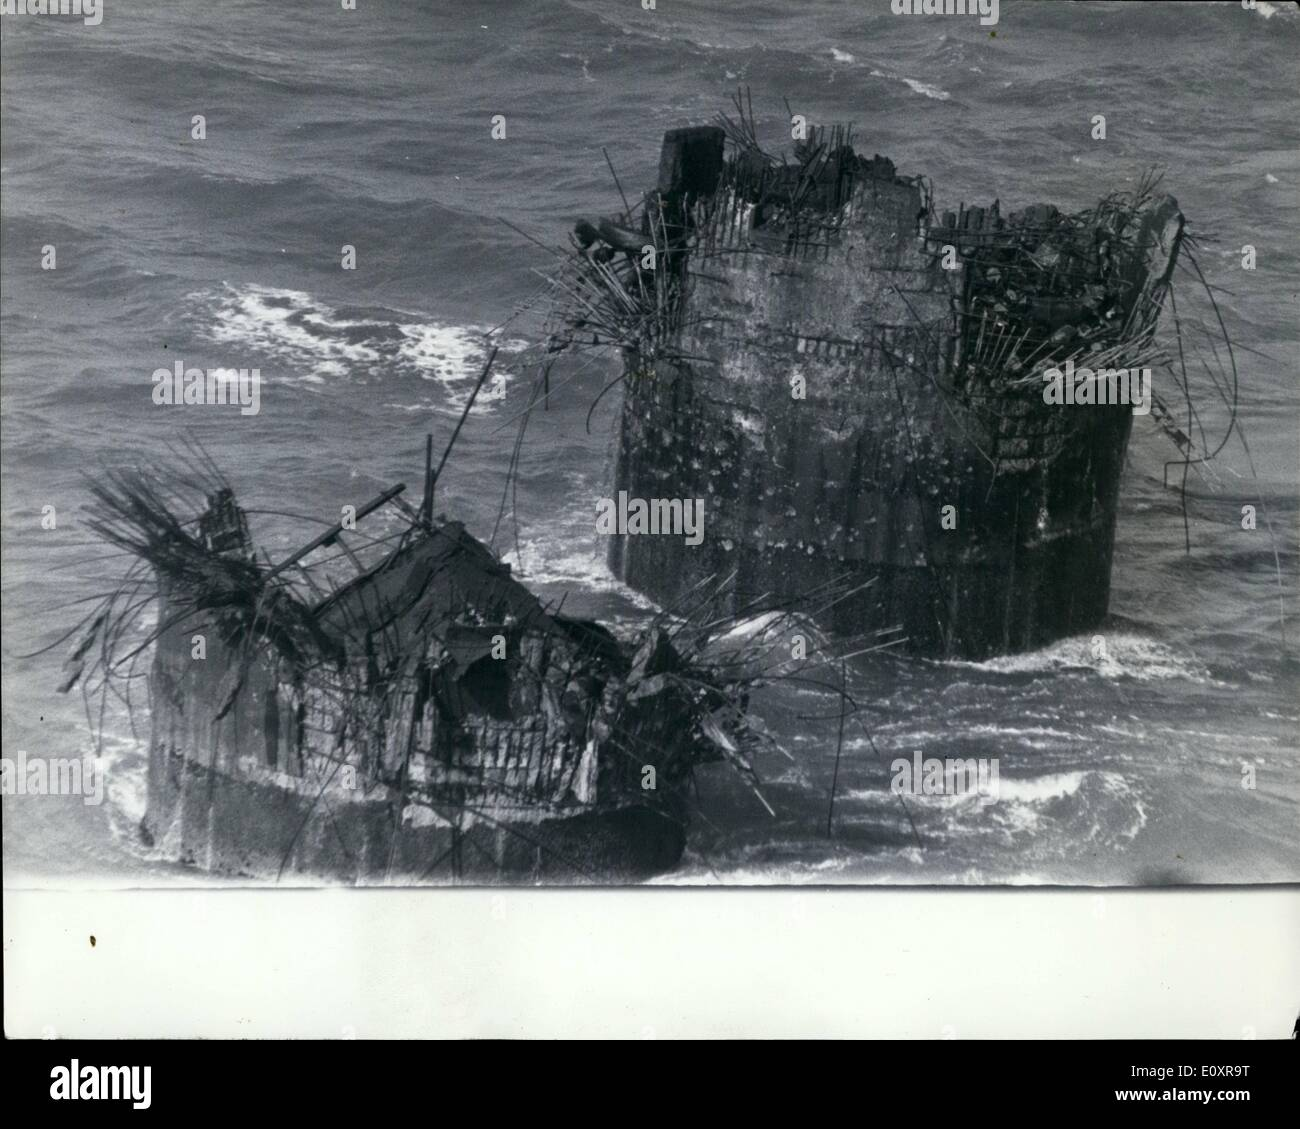 Aug. 08, 1967 - Sea Fort Blown Up: Sunk Head Towers, a former anti-aircraft gun fort 13 miles off Harwich, was blown up yesterday by Royal Engineers to prevent pirate radio stations using it. The tower was suitable for use as a stores supplied from Holland for Radio Caroline South, six miles away. In the opposite direction, eight miles north, is Rough Tower, occupied by Mr. Roy Bates, of Radio Essex. Mr. Bates has occupied Rough Tower for eight months despite seven attempts at boarding by rival organizations - Stock Image